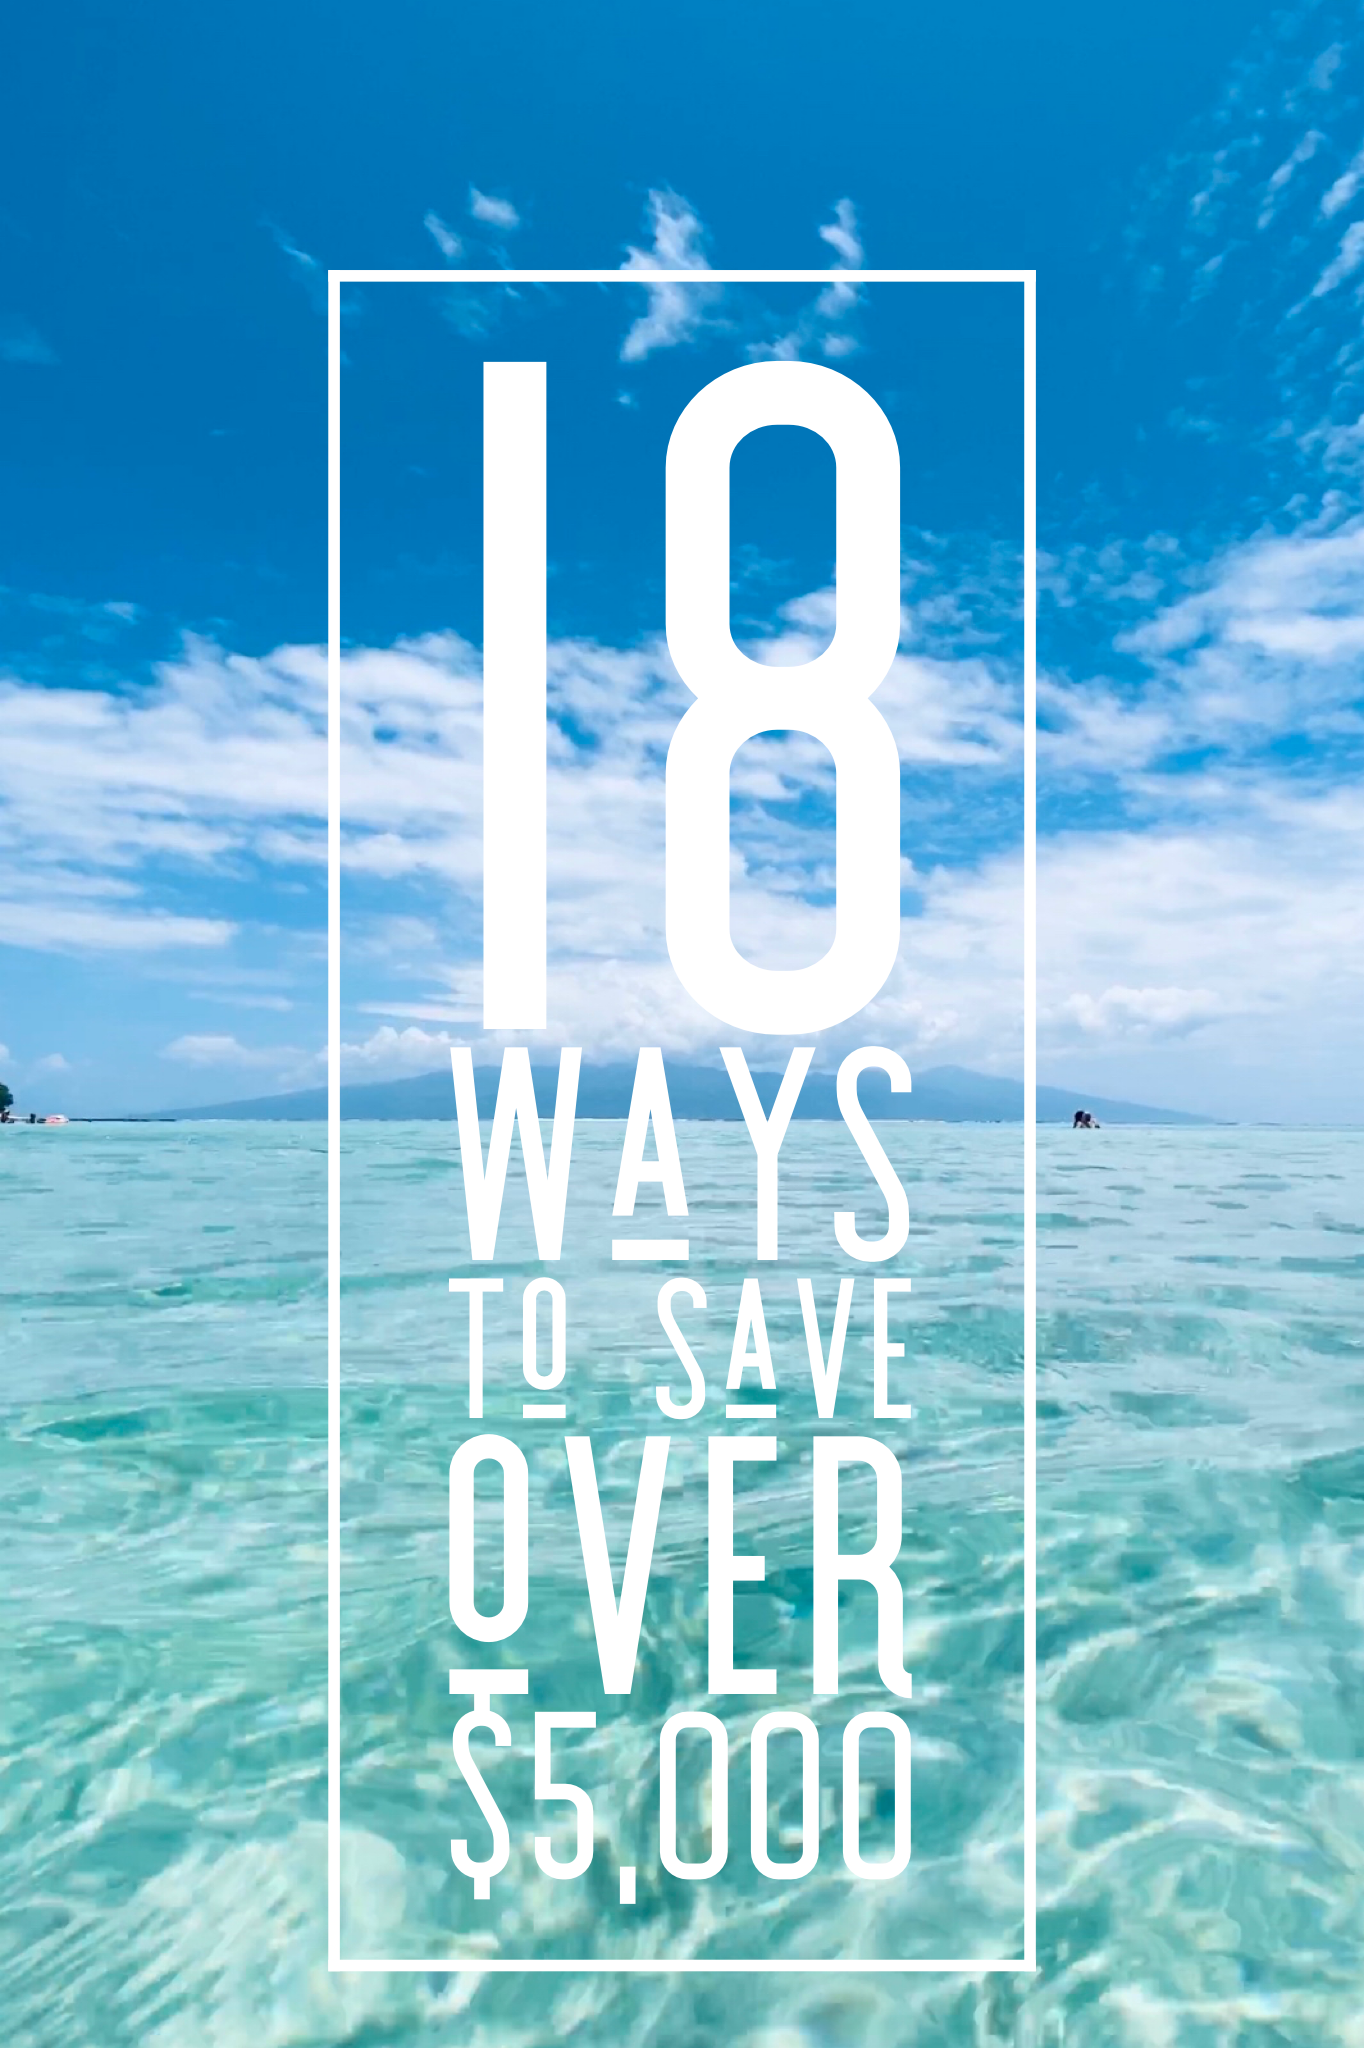 18 ways to save over $5,000